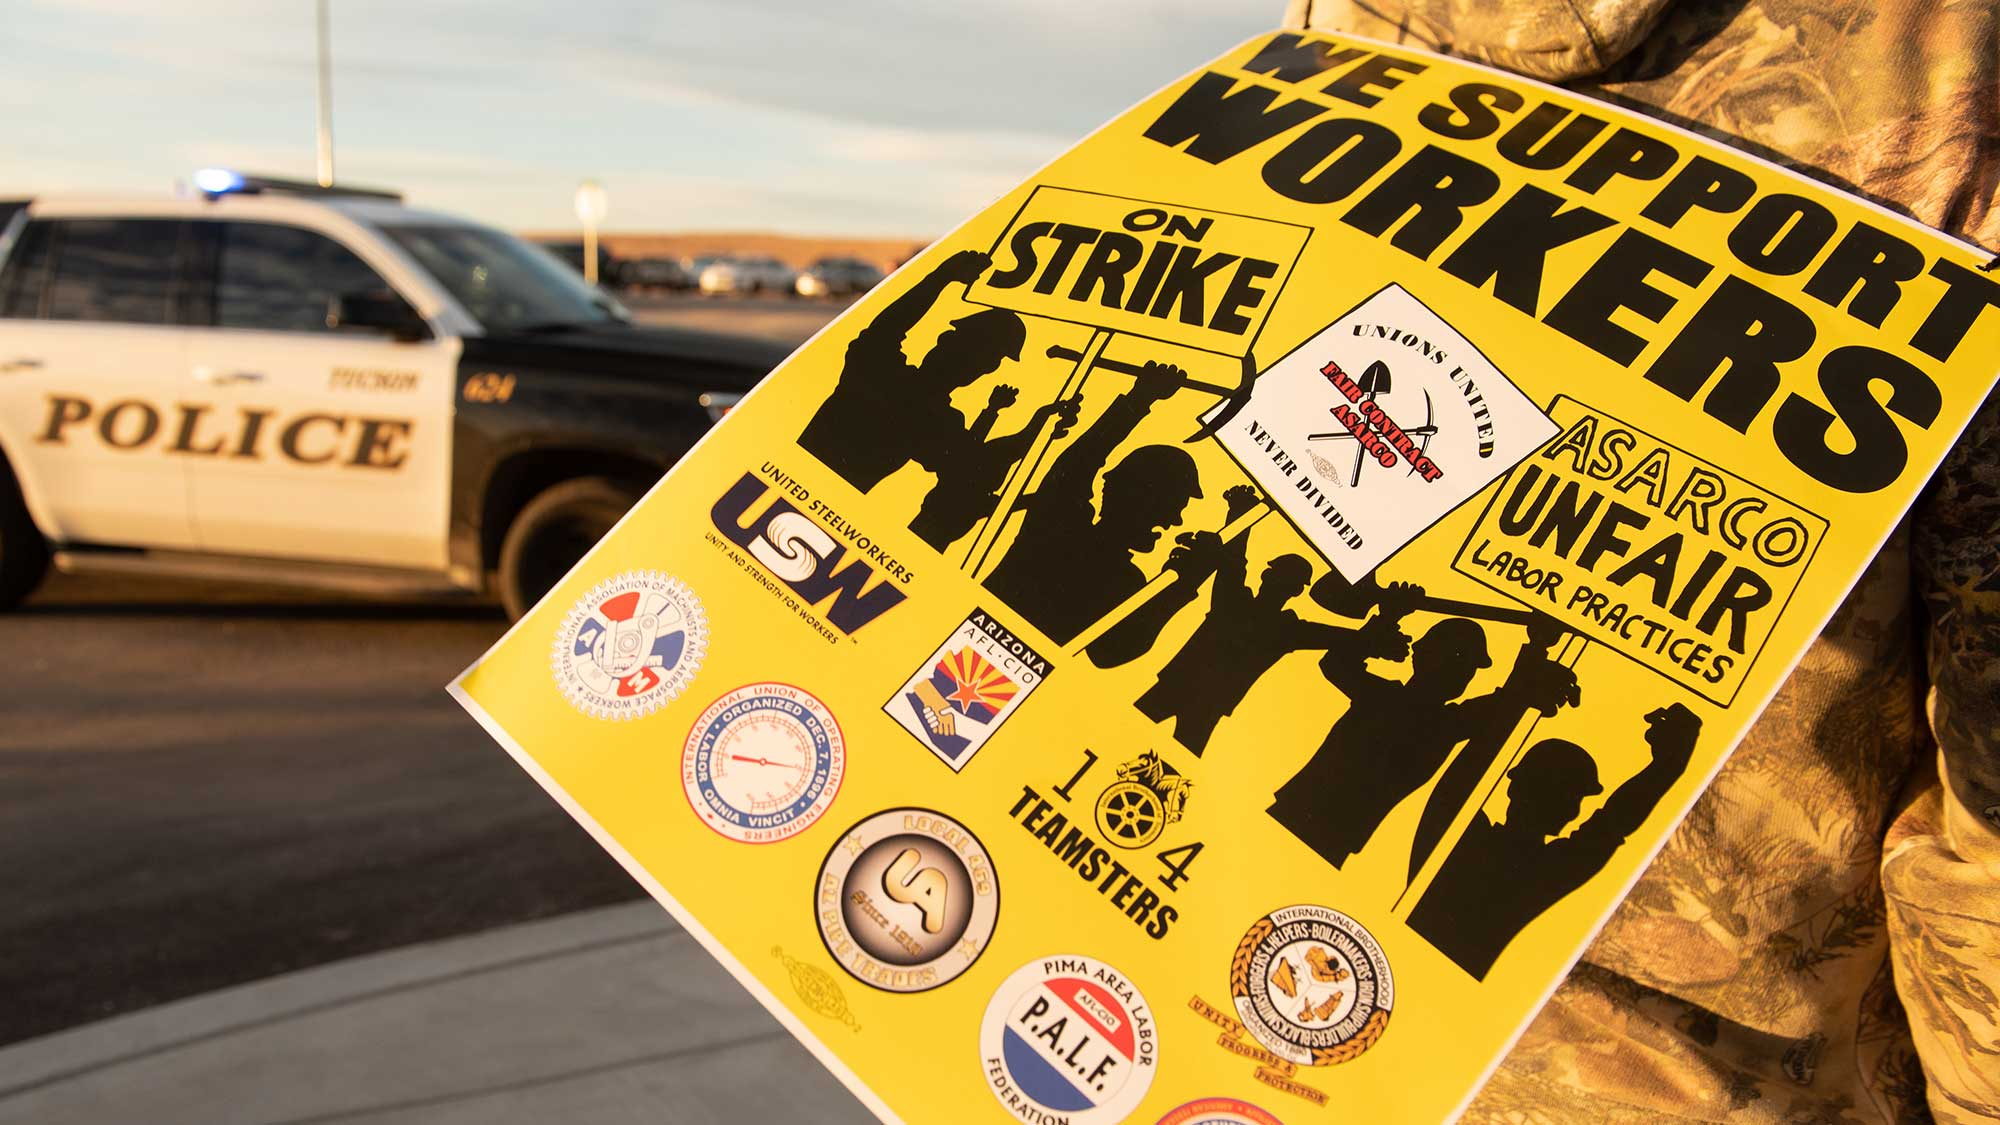 More than 1,700 workers from a number of unions have been on strike against Asarco copper mining and refining operations in Arizona and Texas for four months now.